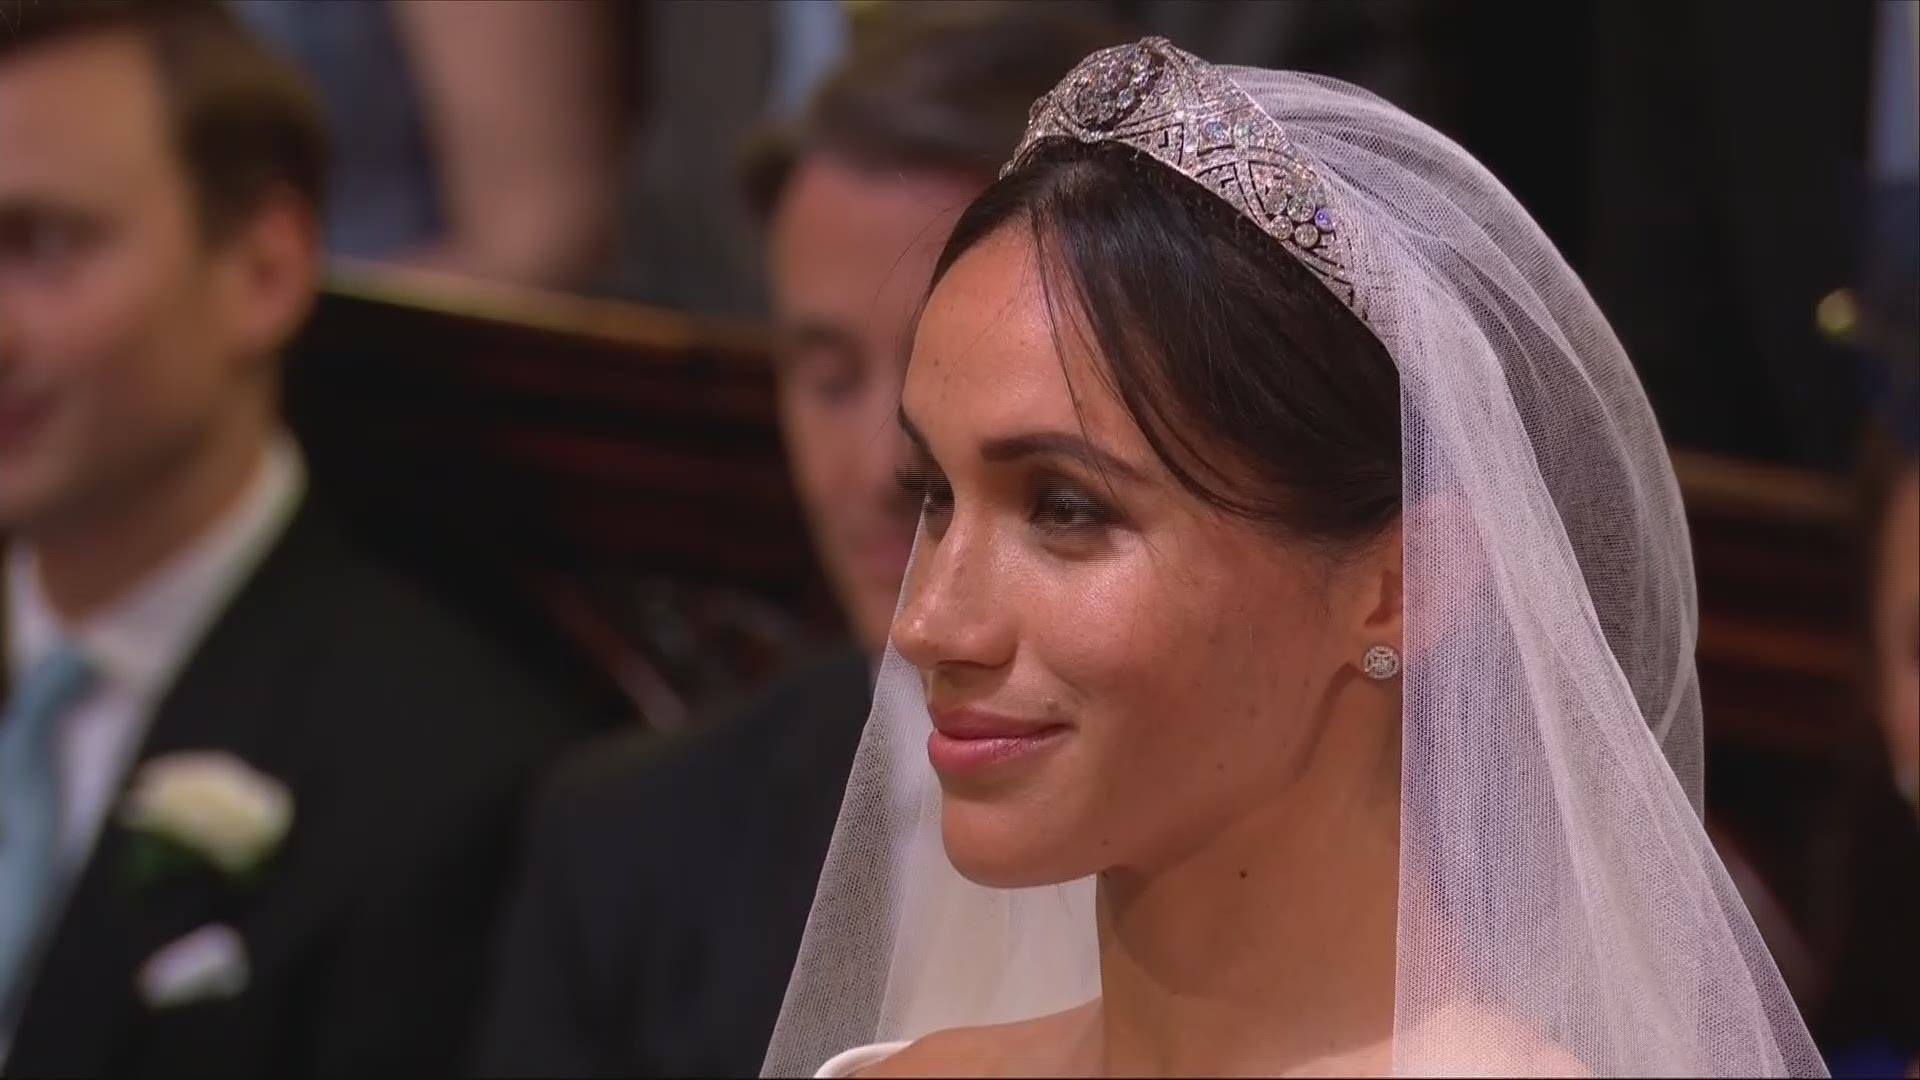 Meghan Markle Wears Stunning Givenchy Wedding Dress Wfmynews2 Com